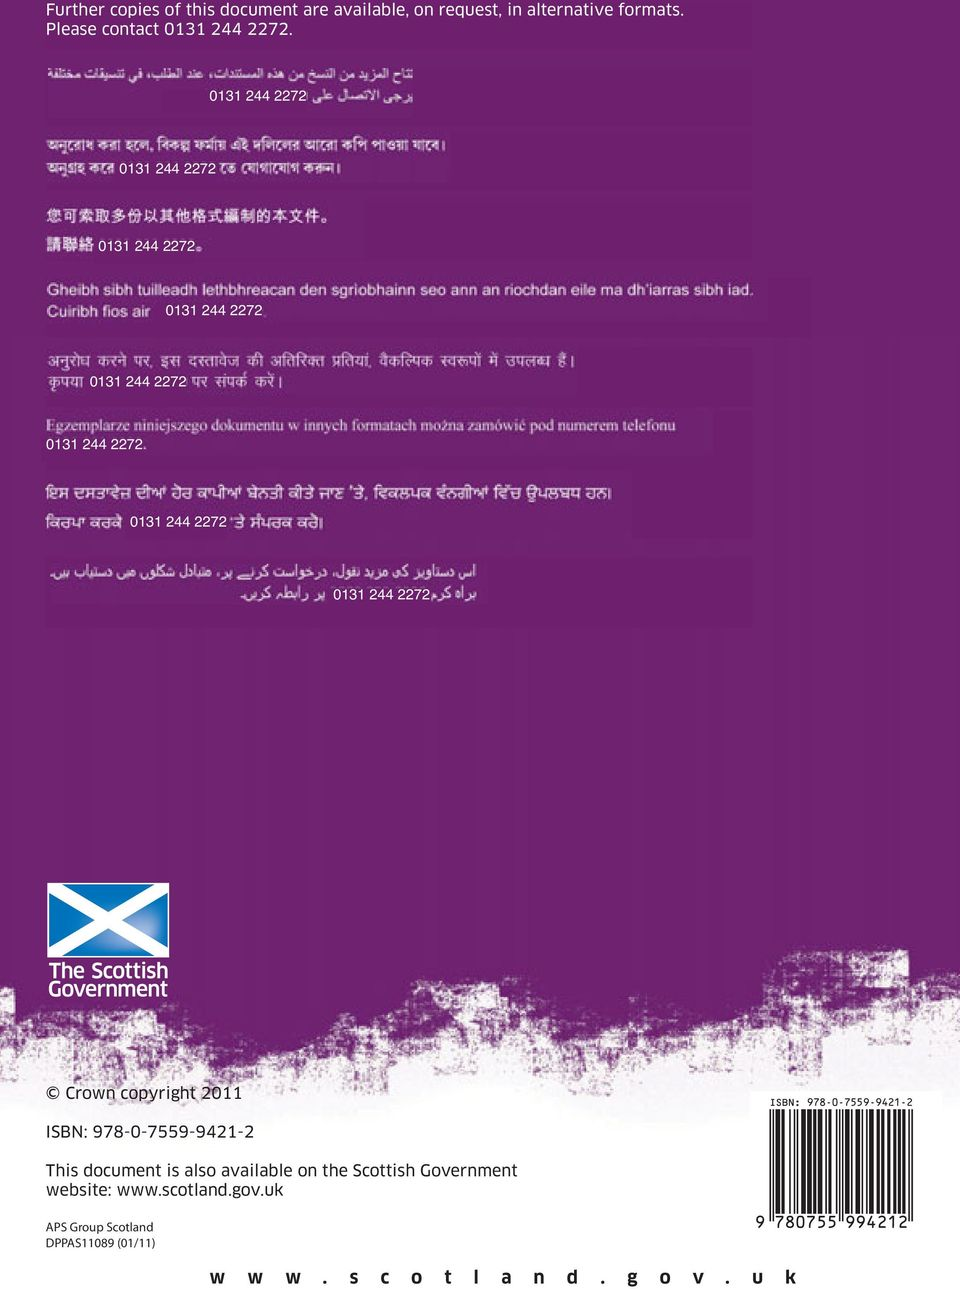 Crown copyright 2011 ISBN: 978-0-7559-9421-2 ISBN: 978-0-7559-9421-2 This document is